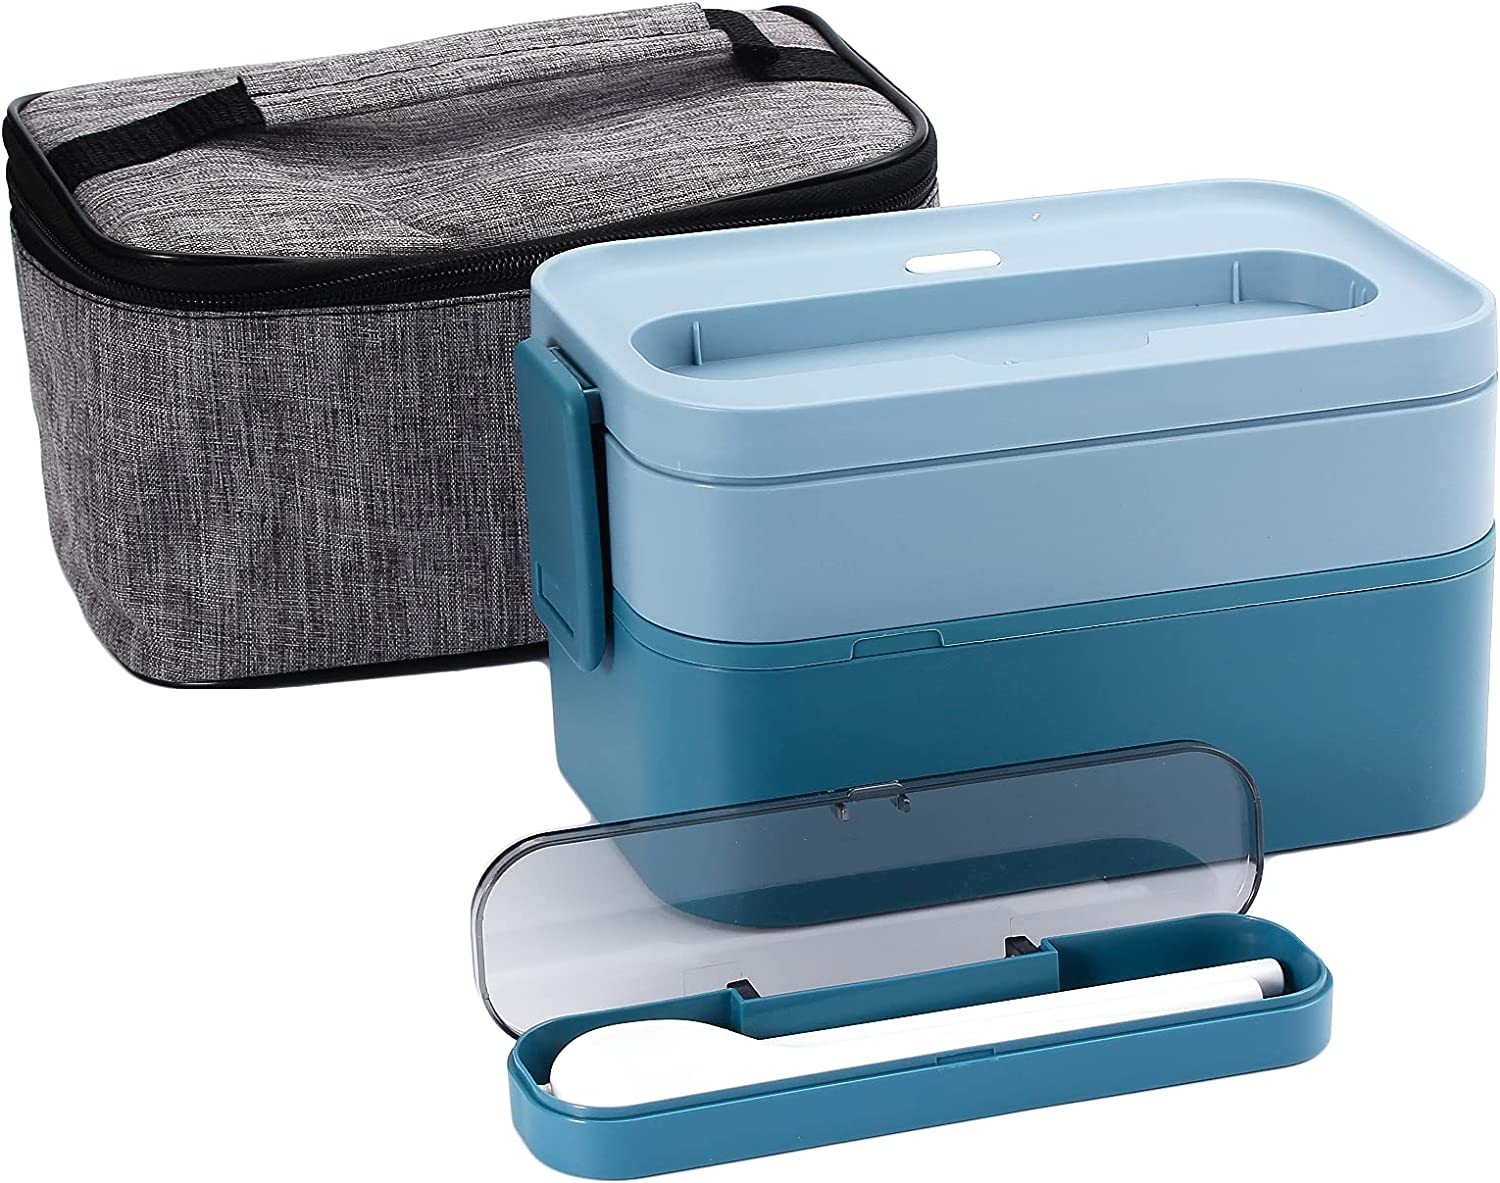 Bento Box For Adults,YFBXG Stackable Bento Lunch Container With Divider,Microwave Safe Leakproof Salad Lunch Container With Utensils & Lunch Bag(Blue)